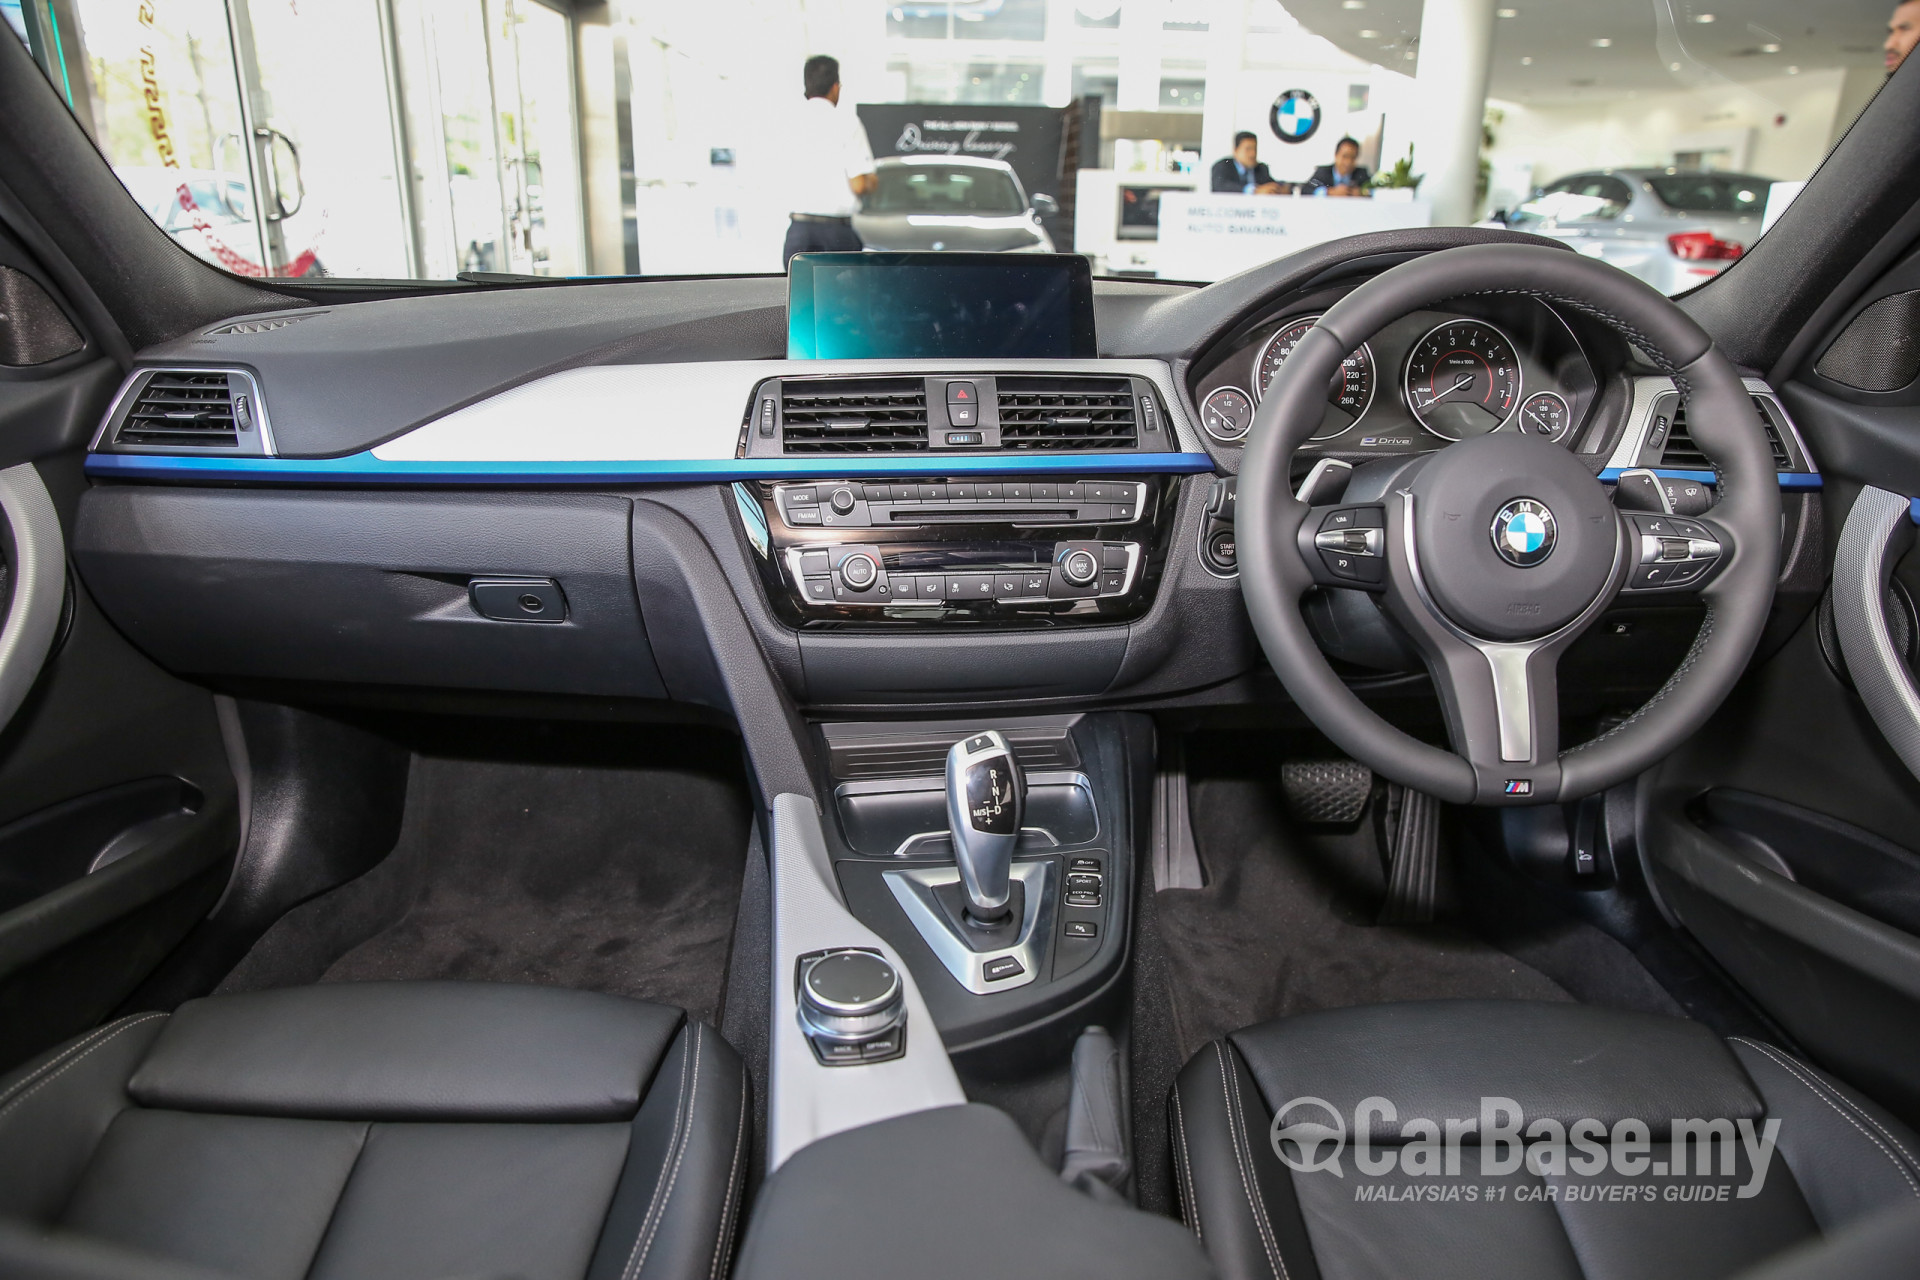 F30 Interieur Bmw 3 Series F30 Lci 2015 Interior Image 36373 In